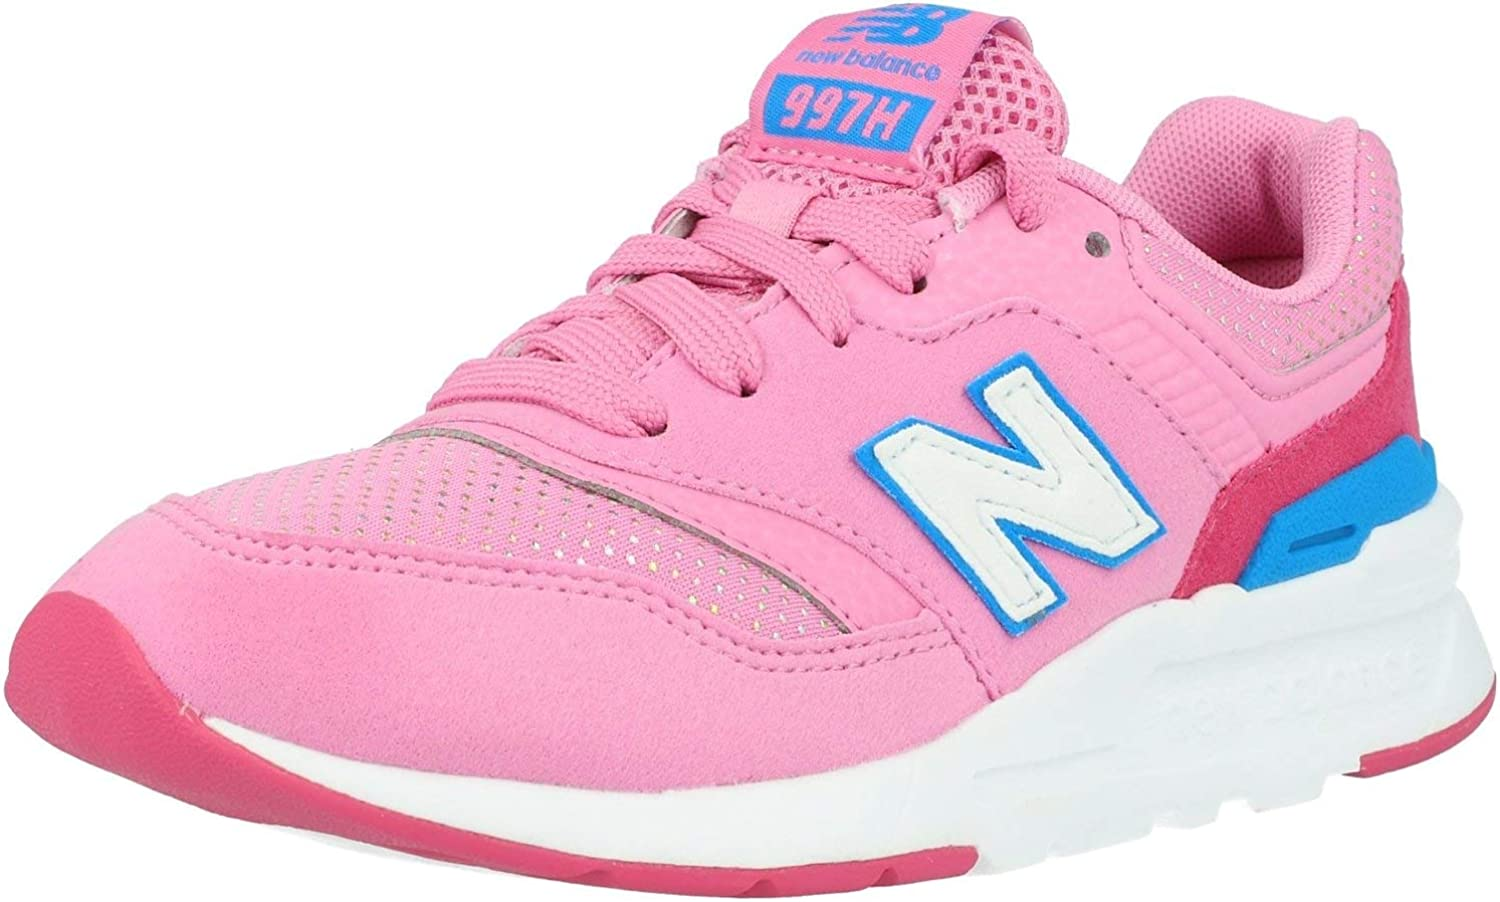 New Balance 997H Candy Pink/Exhuberent Pink Suede Child Trainers Shoes